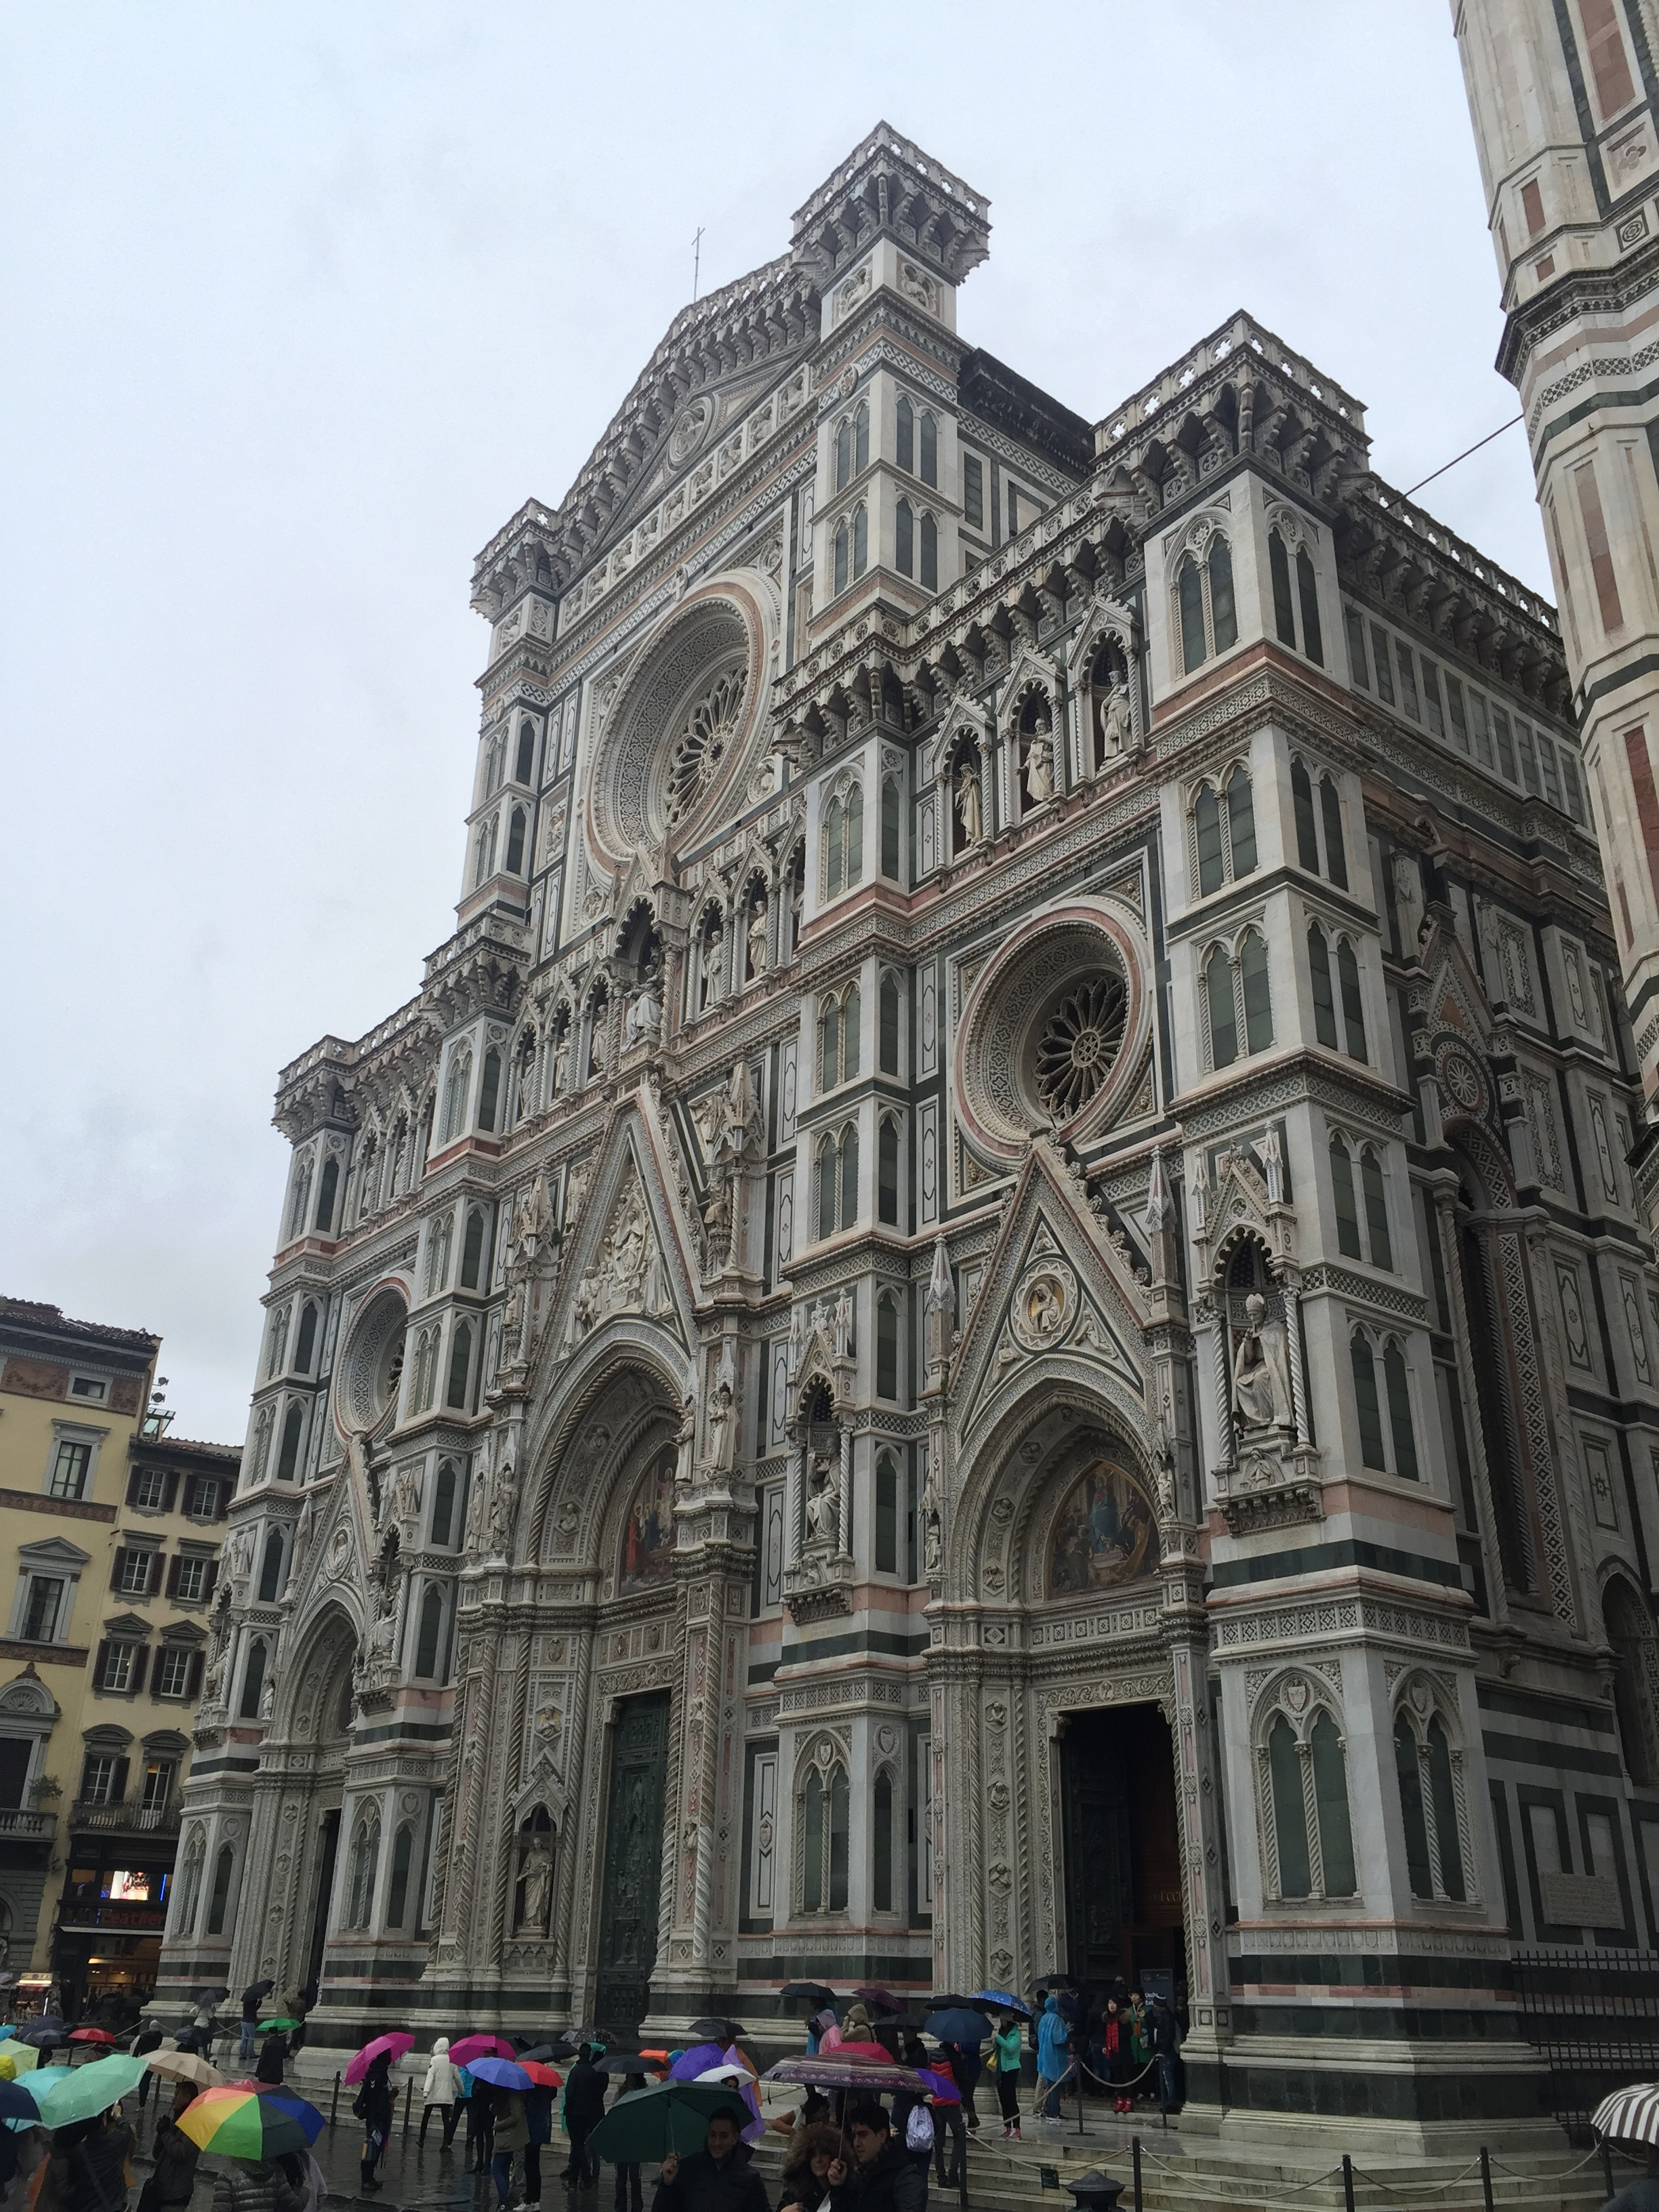 The front facade of the cathedral of Florence